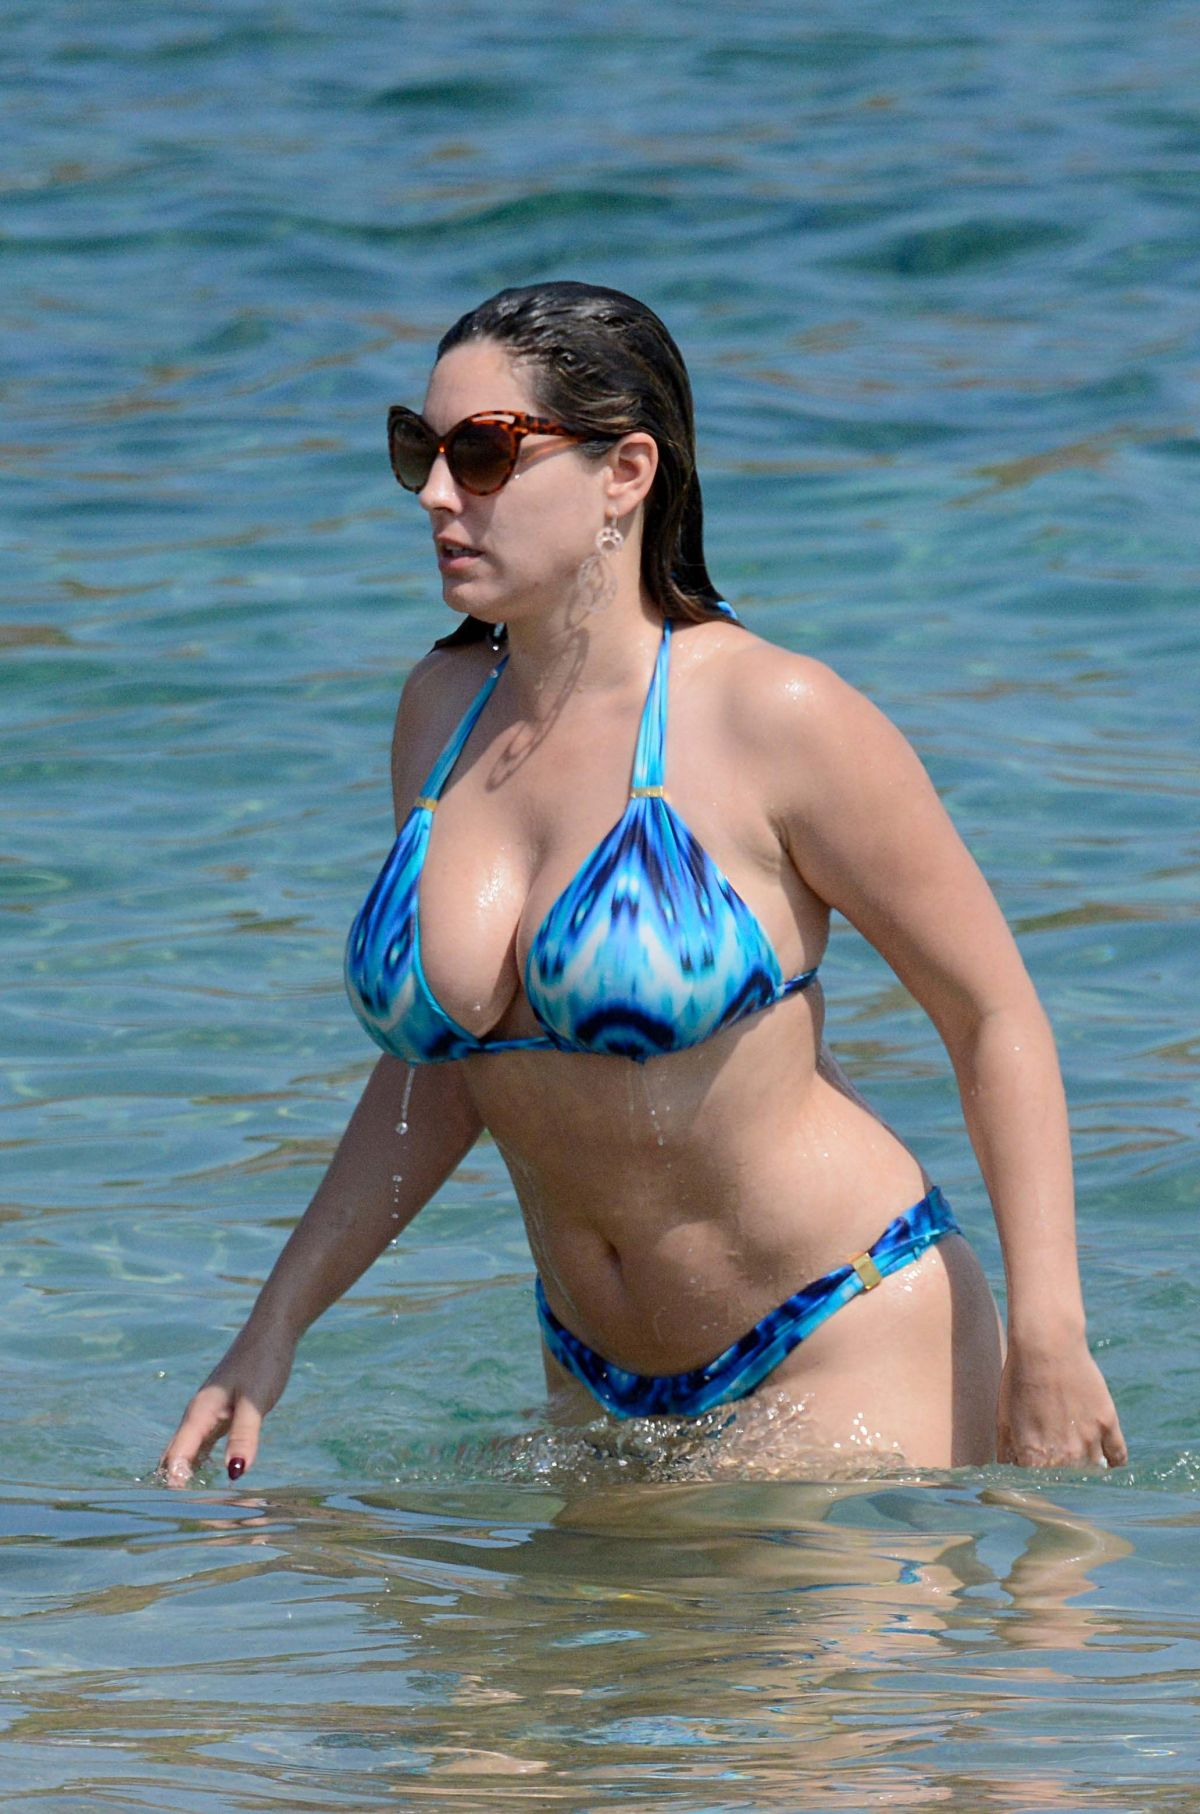 Kelly brook bikini pics, grab your tits